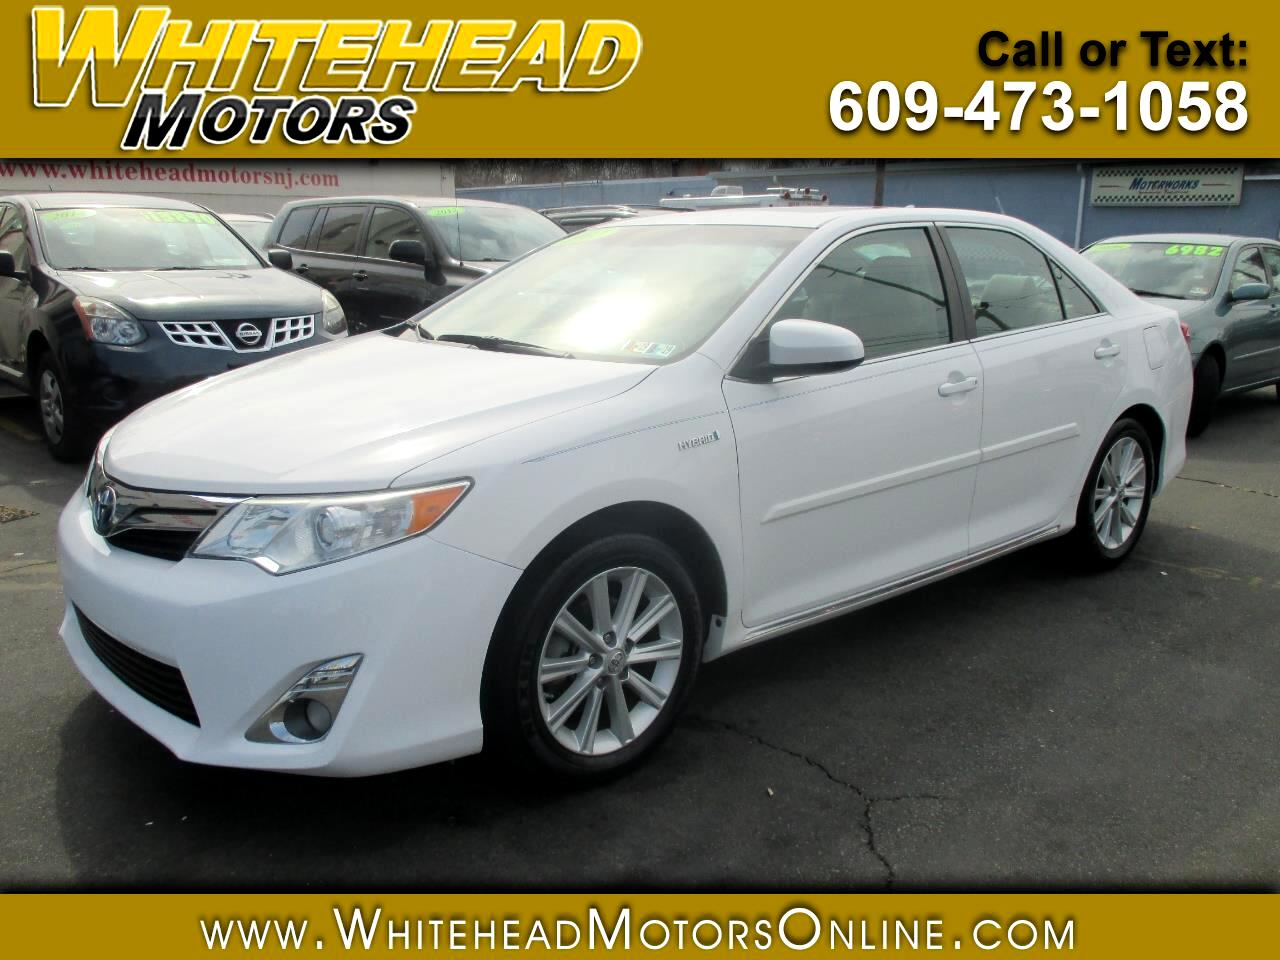 2012 Toyota Camry Hybrid 4dr Sdn XLE (Natl)